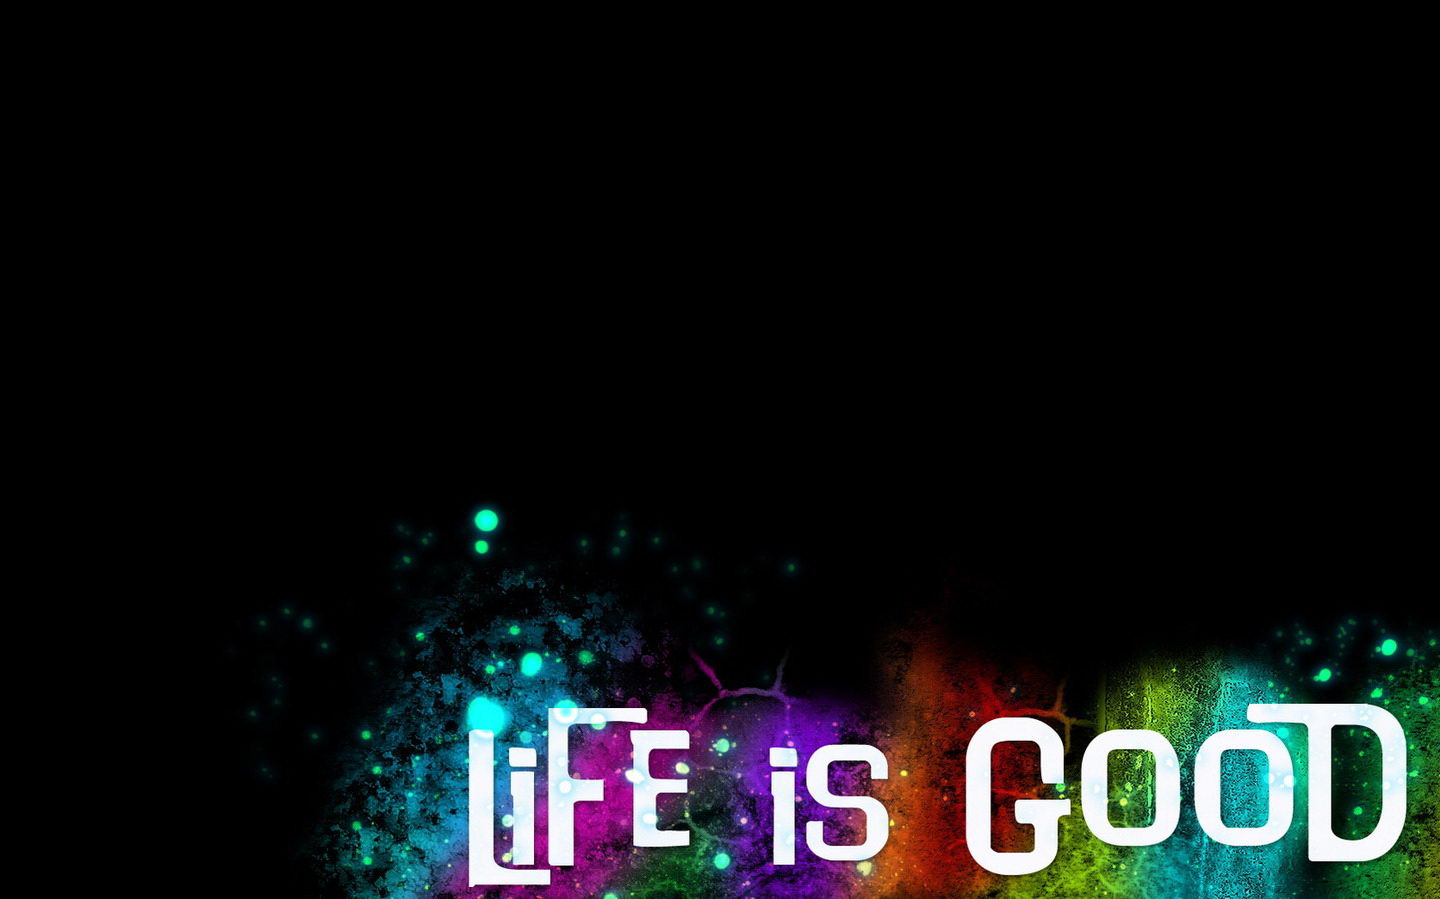 Life Is Good Widescreen Full HD Wallpaper